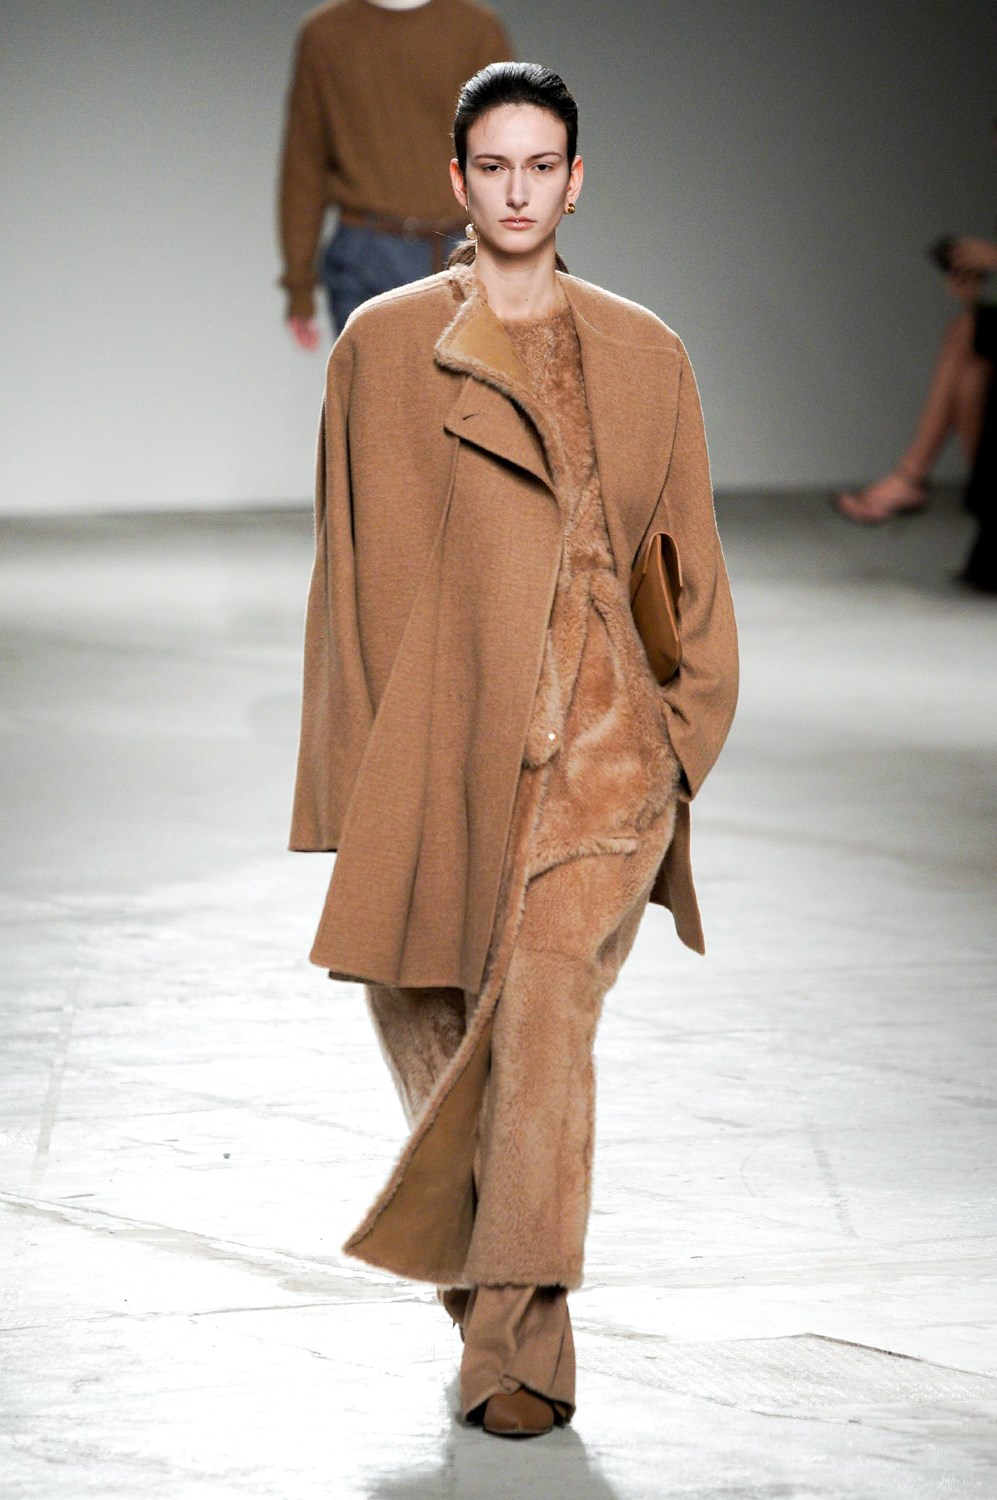 Brown Earth Tone Fall Color 2020 Fashion Trend